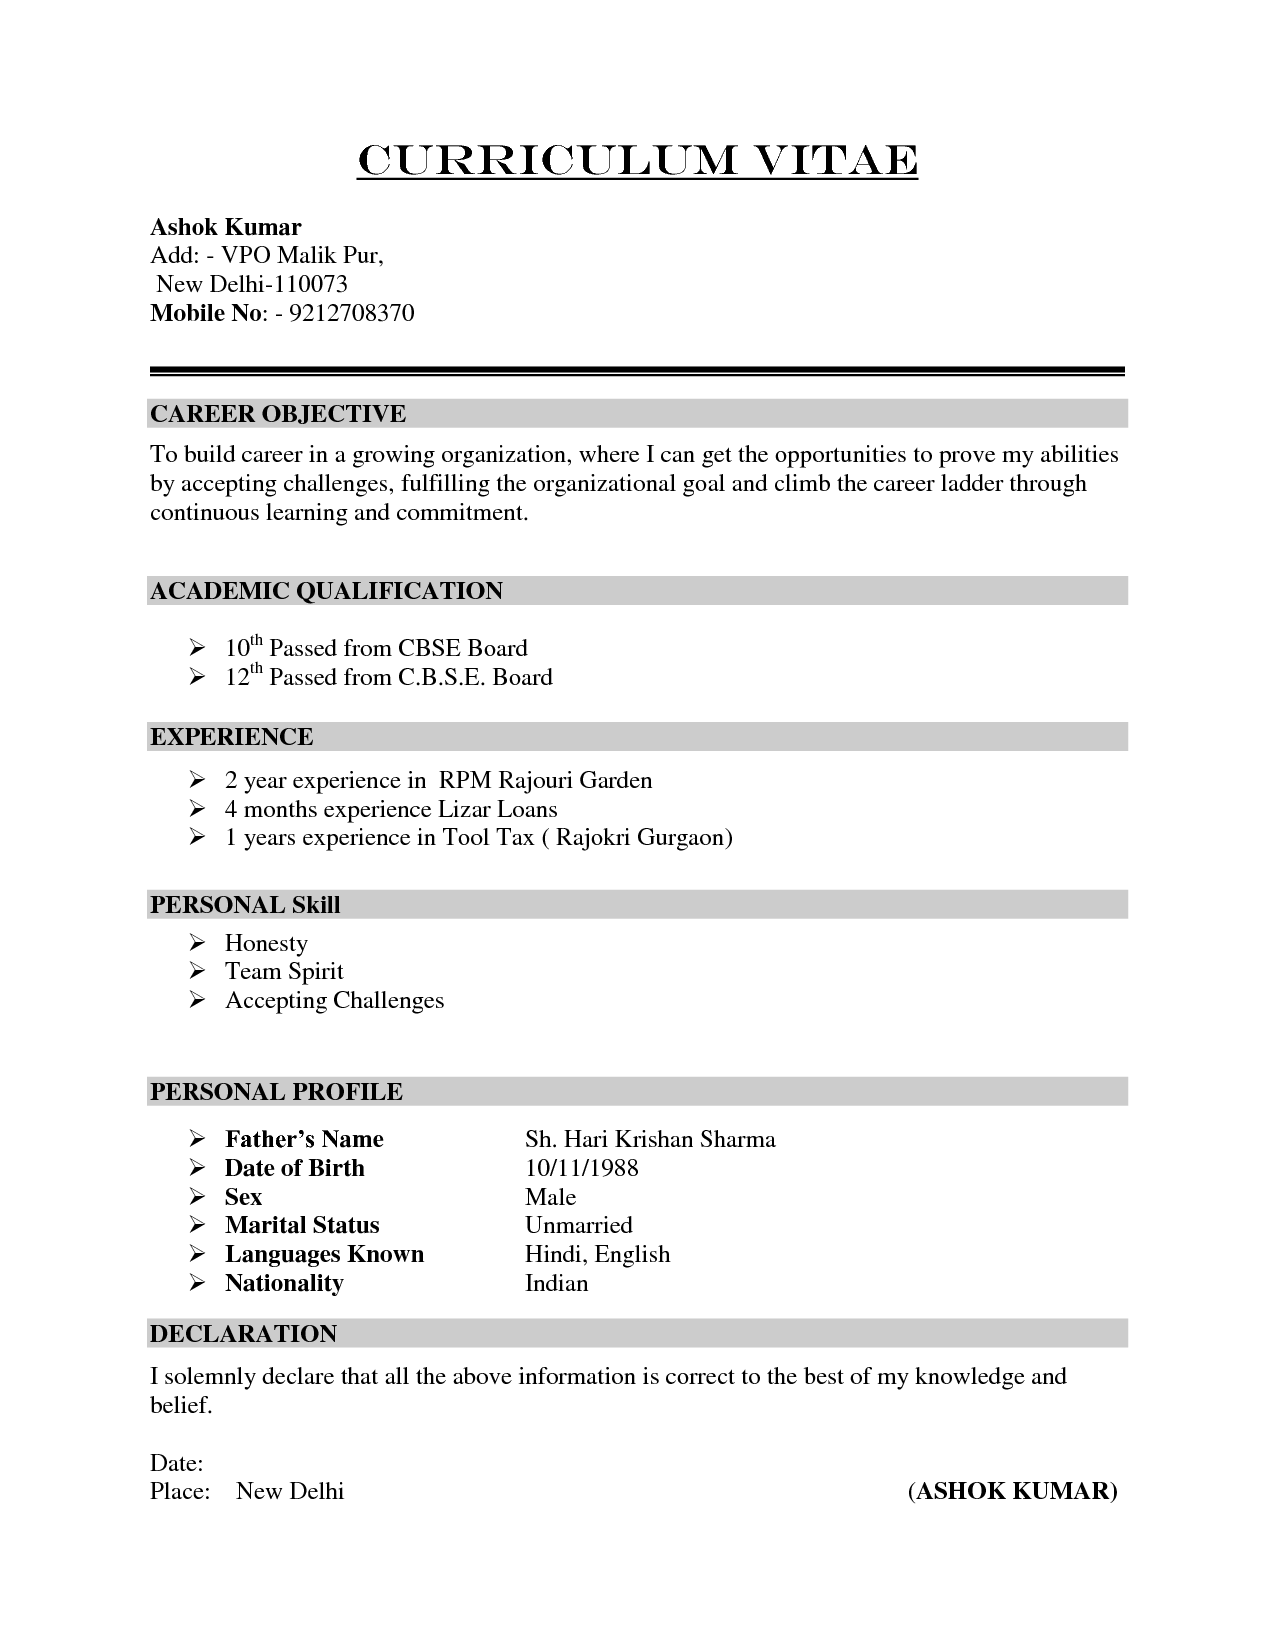 Find Resume Free Cv Samples Yahoo Image Search Results Preschool Ideas